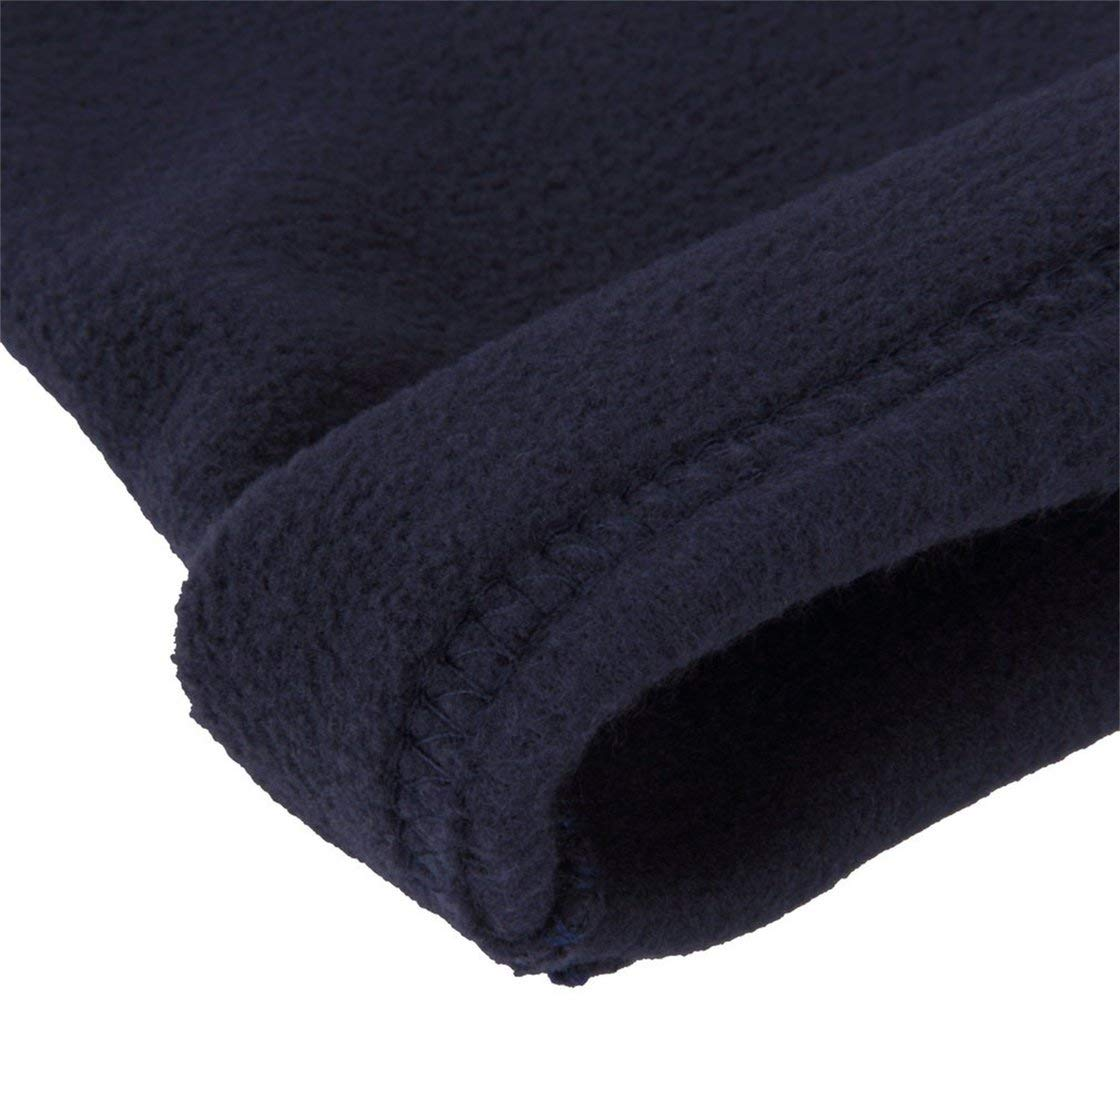 Fashion Outdoor Unisex Warm Neck Collar Windproof Neck Cap Polar Fleece Scarf